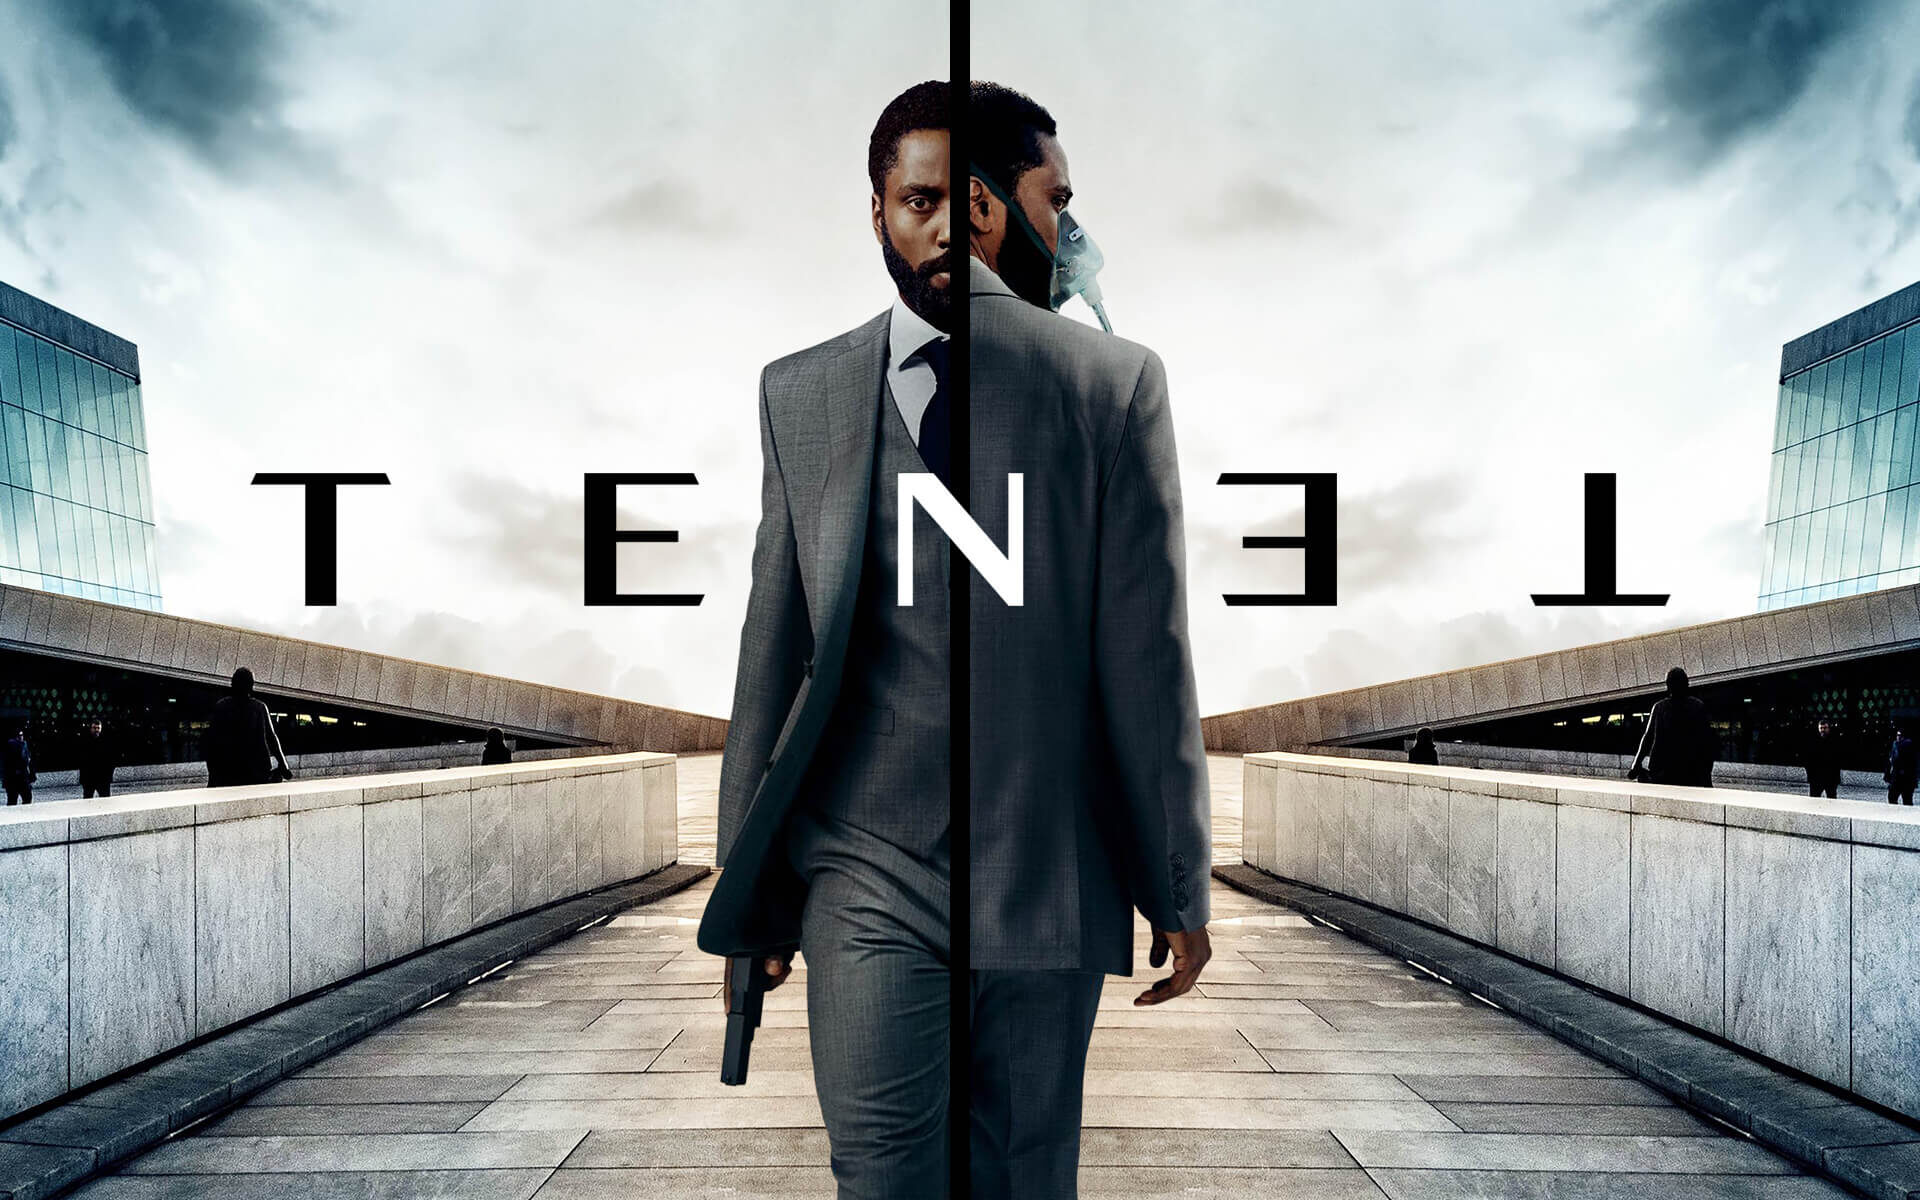 Tenet, Directed by Christopher Nolan